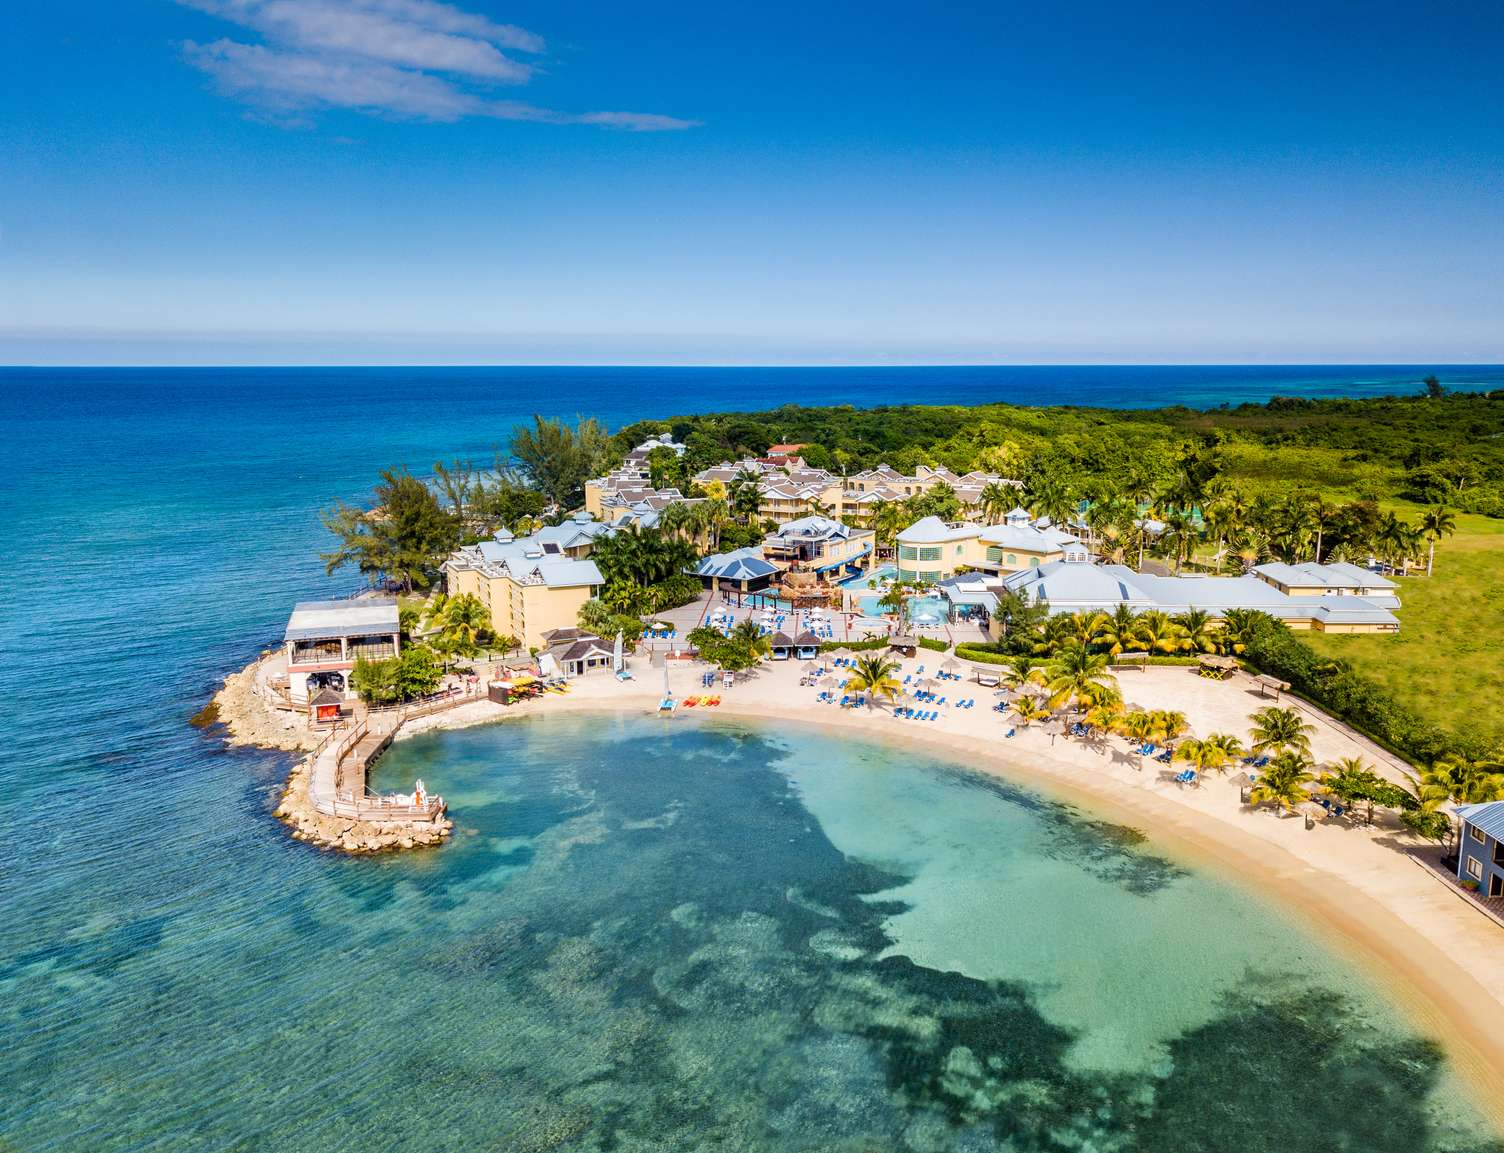 Jewel Paradise Cove Resort & Spa, Saint Ann, Jamaica